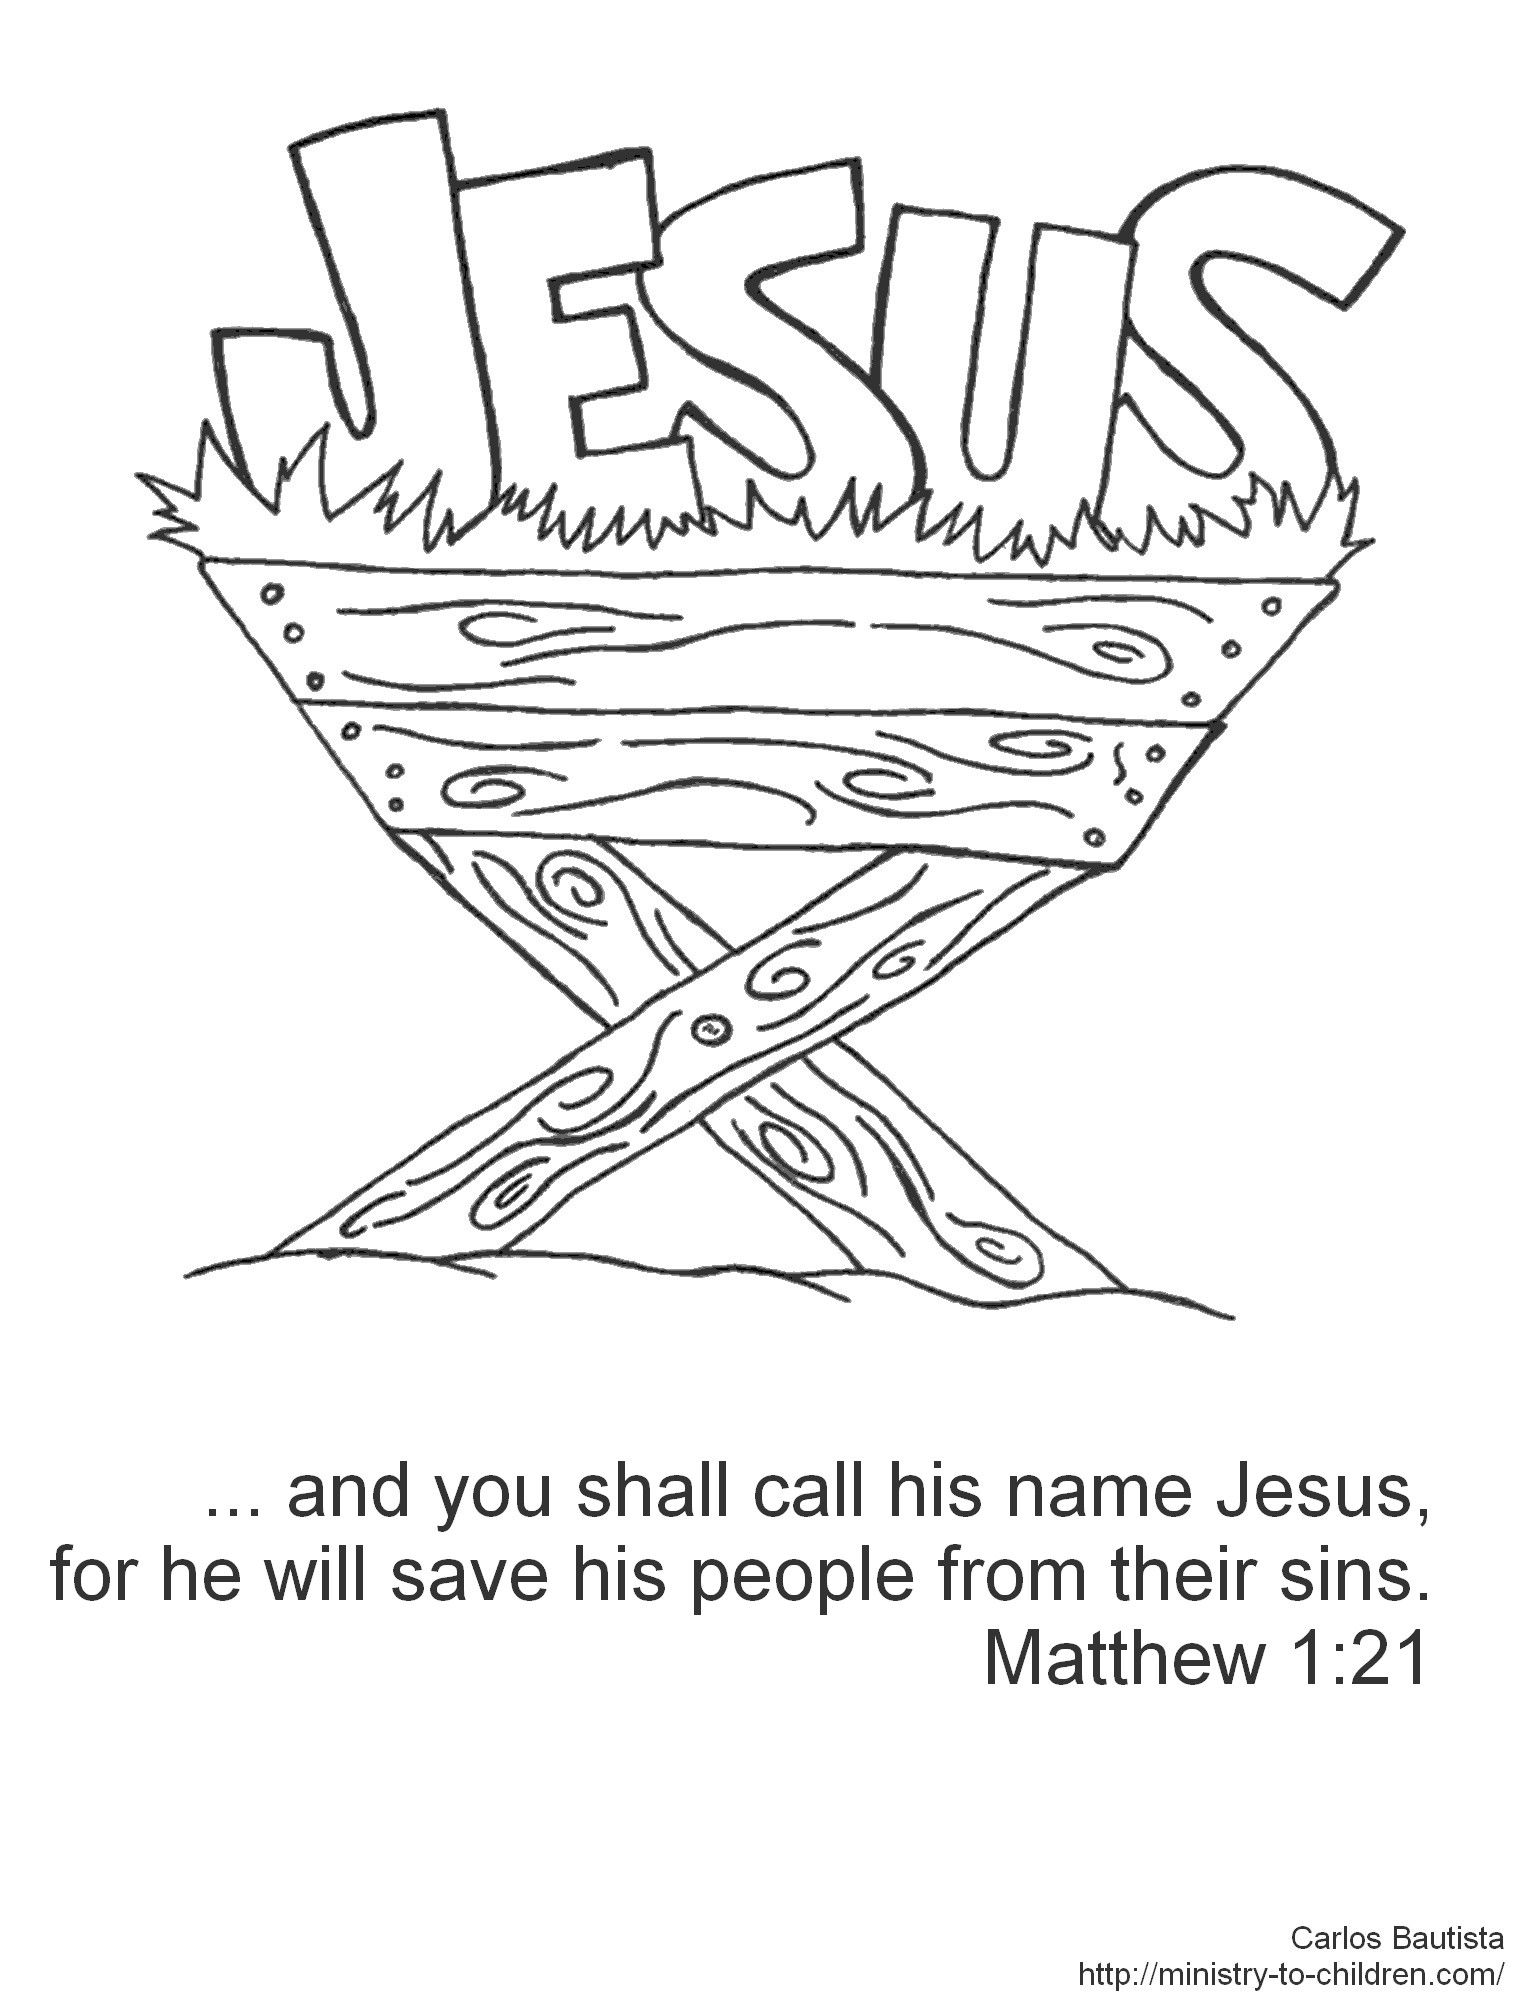 Coloring pages with bible verses - Bible Verses Jesus Coloring Pages